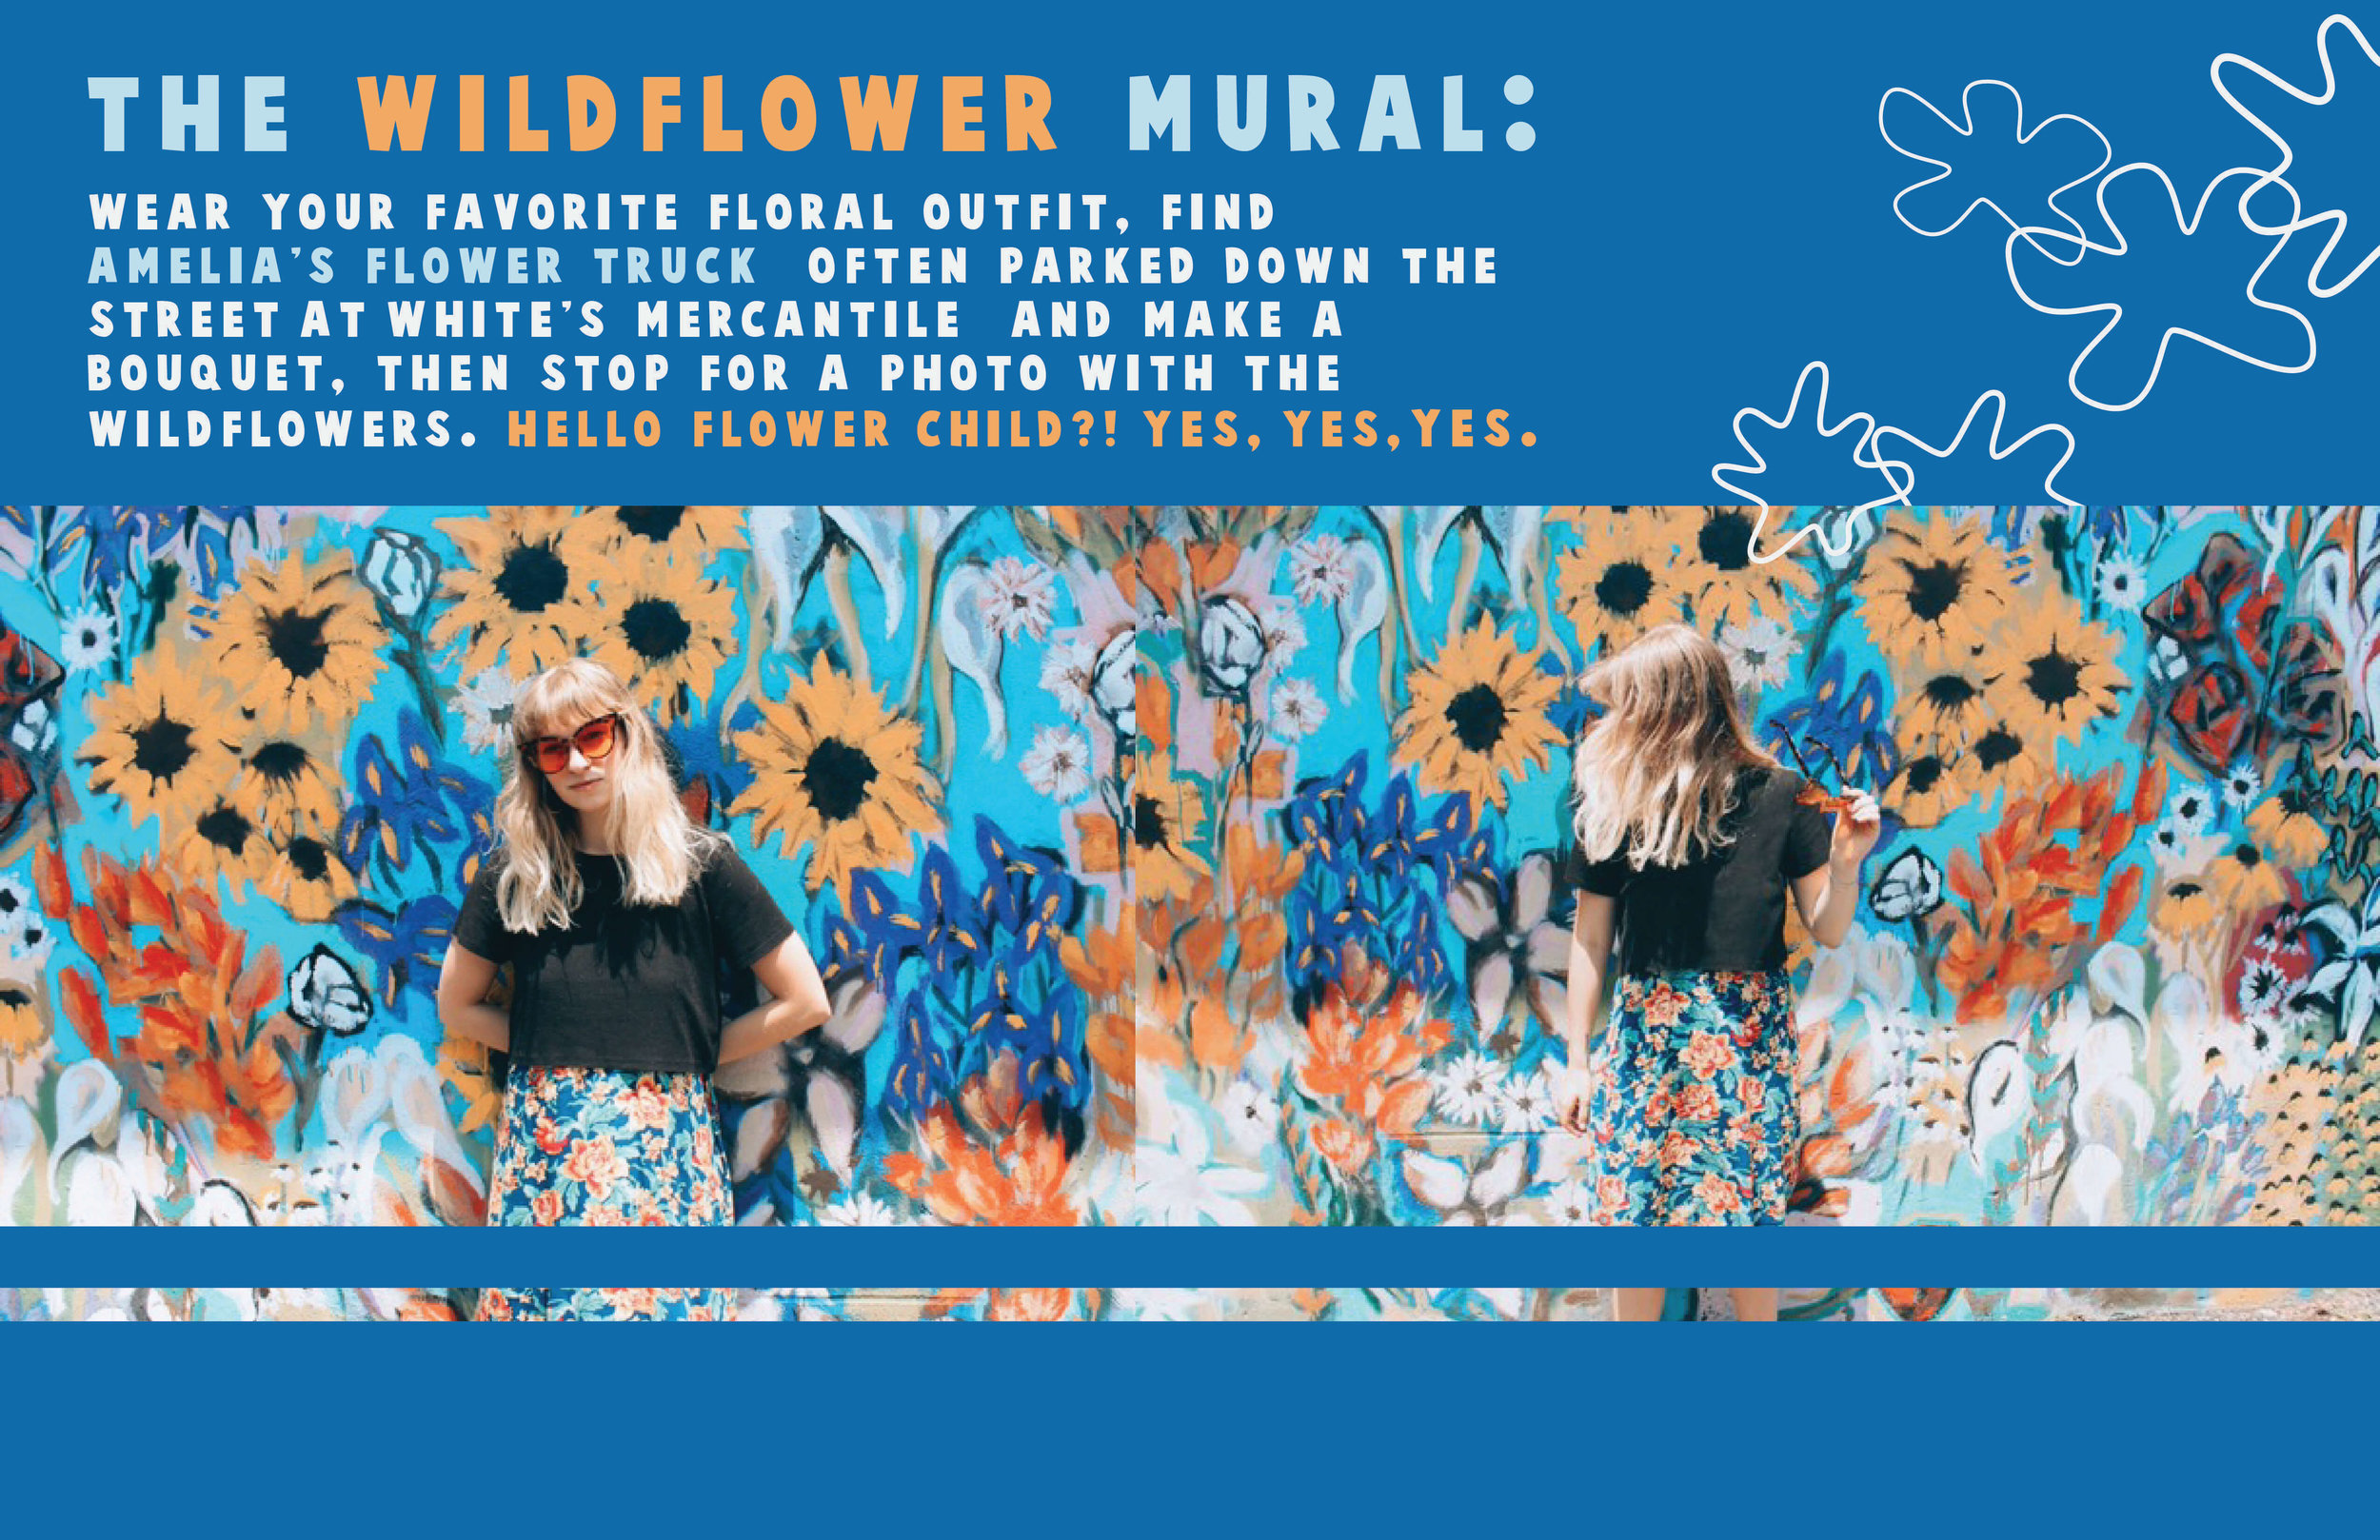 Wildflower Mural / Oui We Nashville